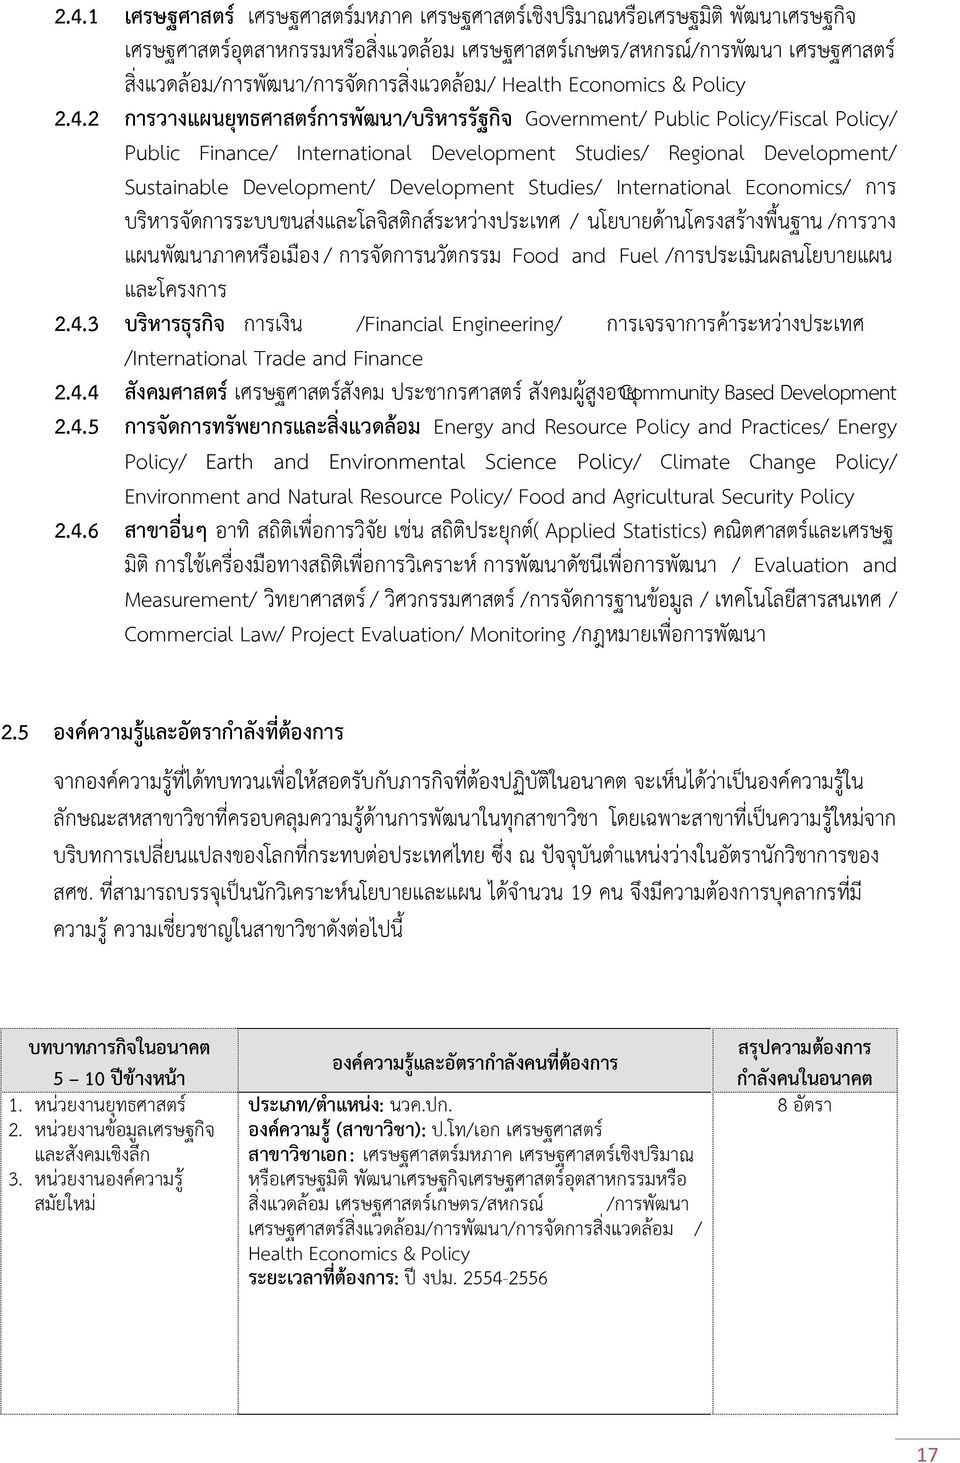 2 การวางแผนย ทธศาสตร การพ ฒนา/บร หารร ฐก จ Government/ Public Policy/Fiscal Policy/ Public Finance/ International Development Studies/ Regional Development/ Sustainable Development/ Development